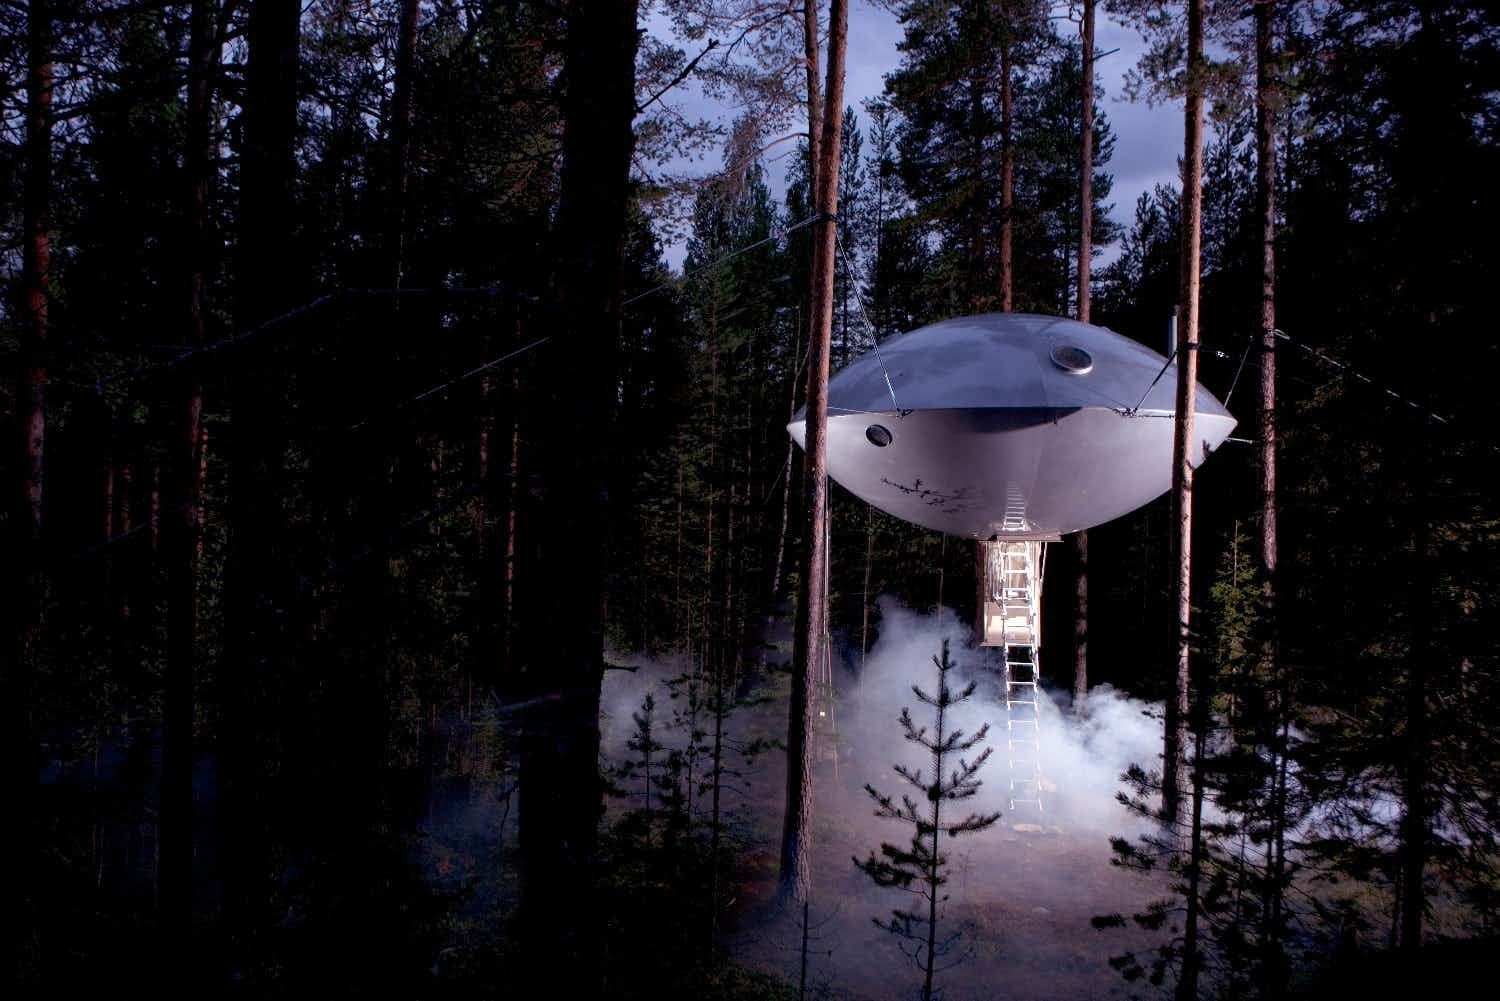 Win an escape to stay in a UFO in the trees for National Unplugging Day